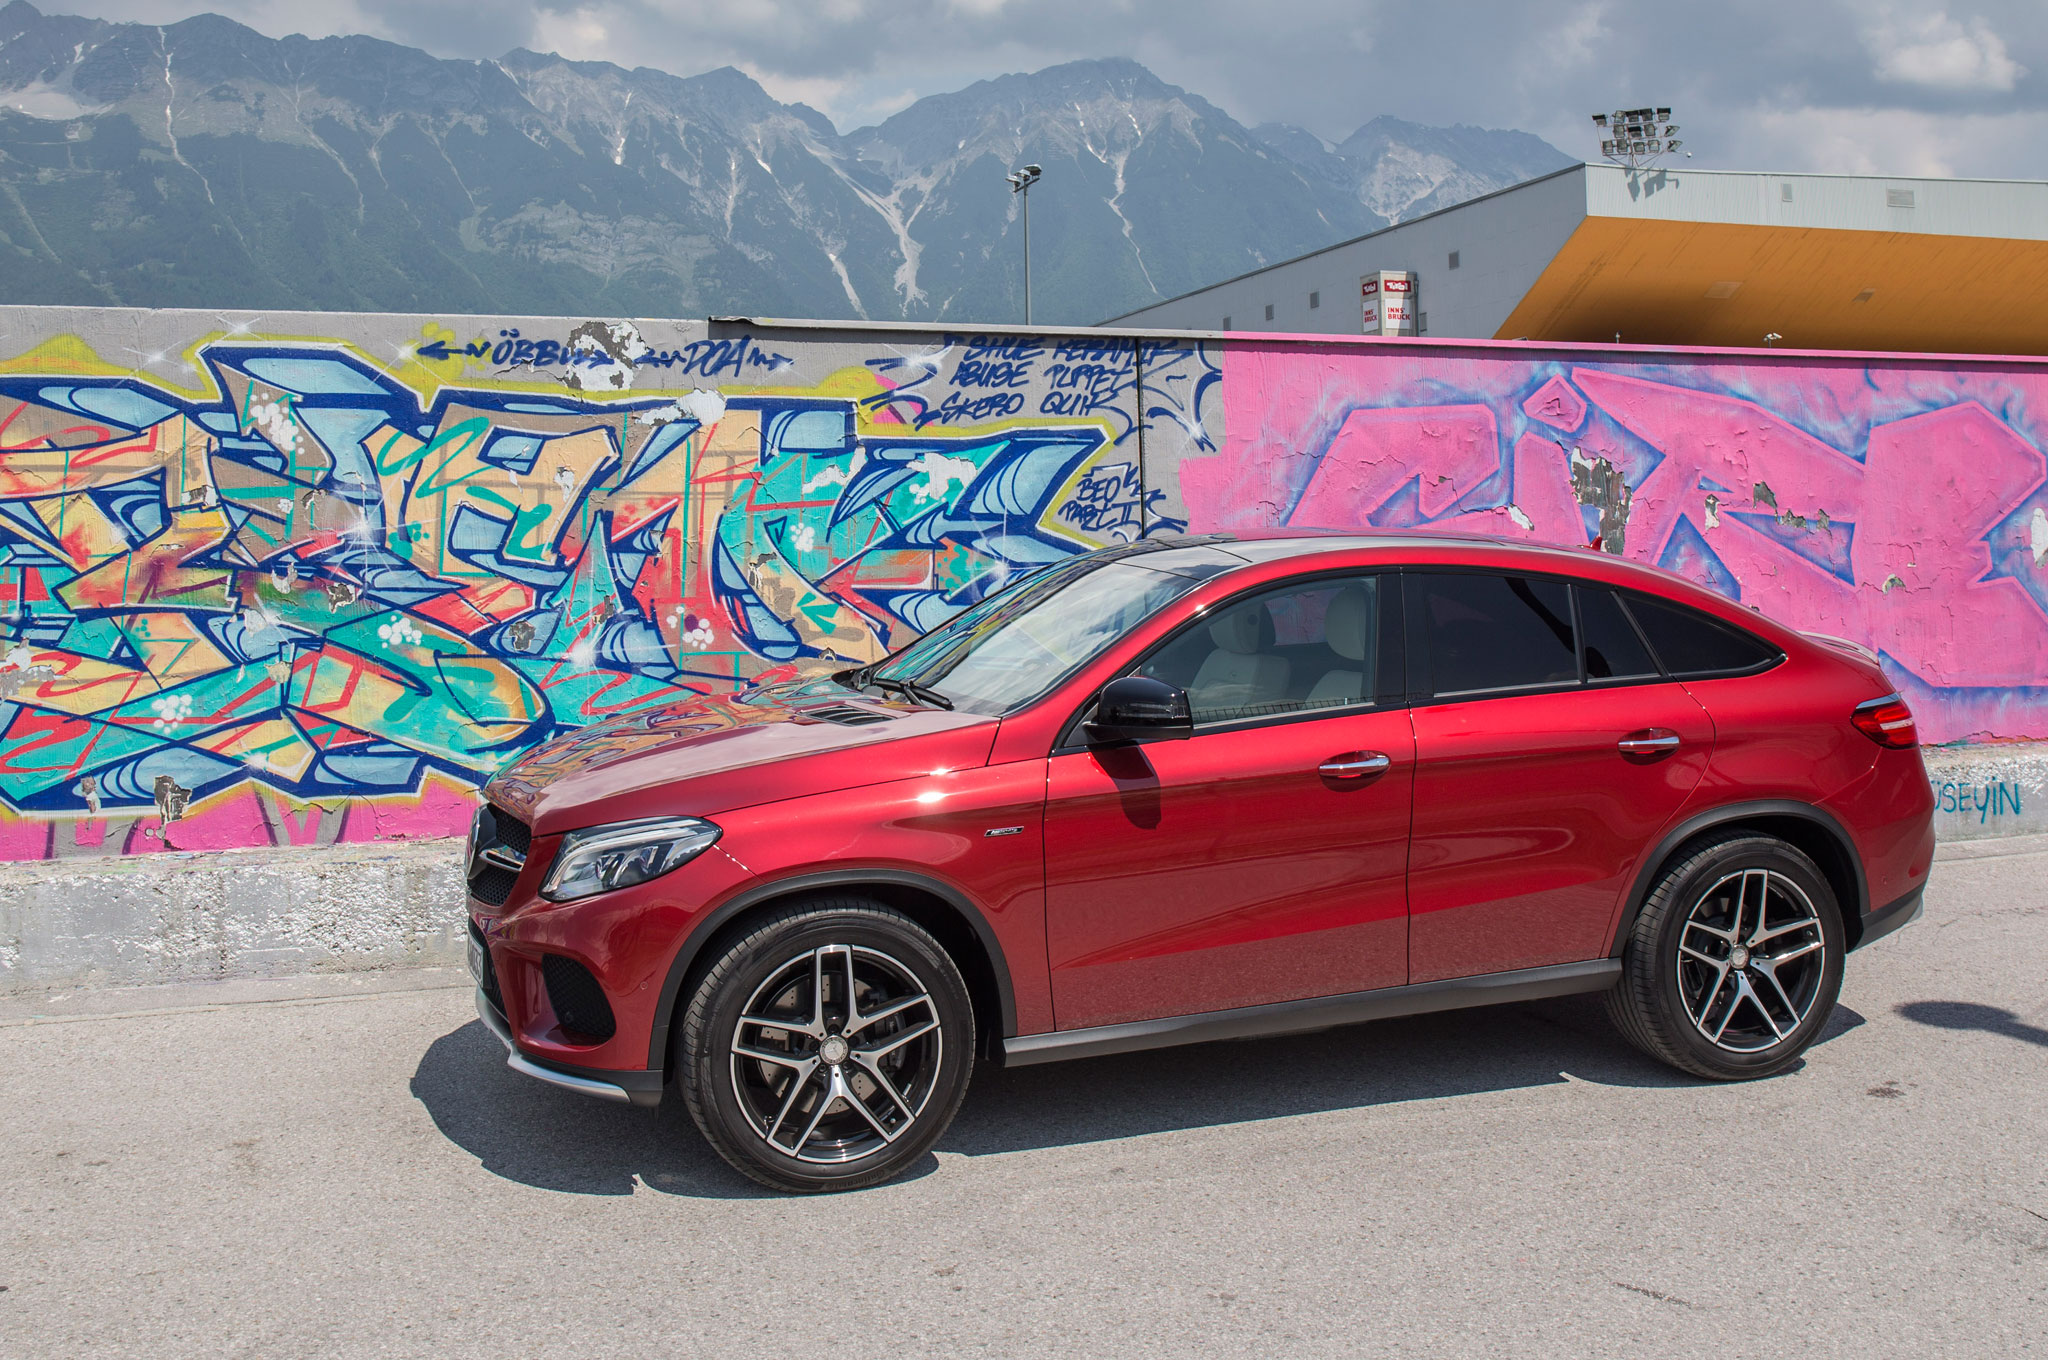 https://st.automobilemag.com/uploads/sites/11/2015/10/2016-Mercedes-Benz-GLE450-AMG-4Matic-Coupe-side-profile-03.jpg